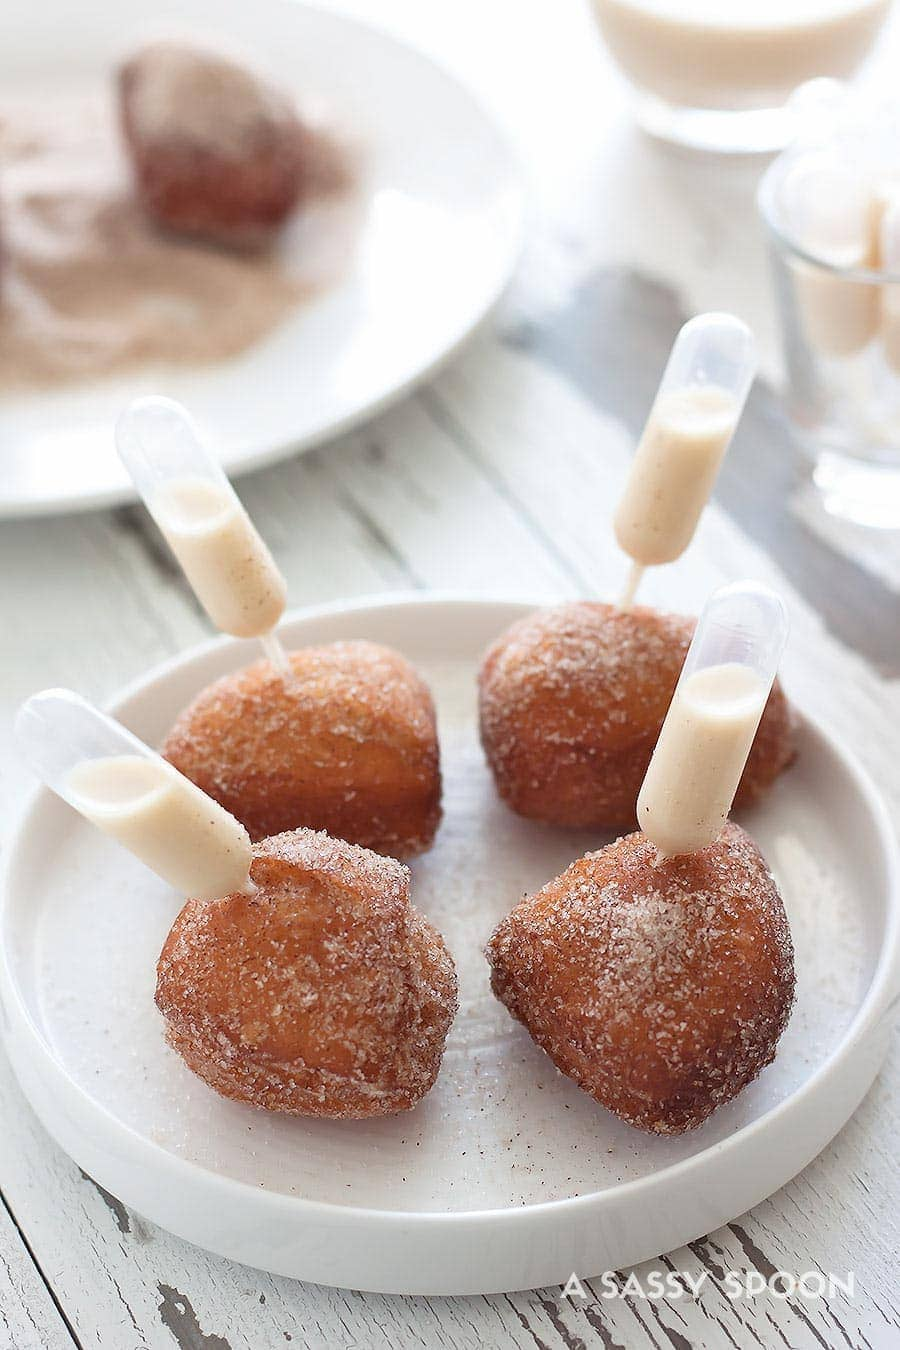 Quick and easy-to-make donut holes made in just minutes using refrigerated biscuit dough with a pipette of homemade coquito aka Puerto Rican eggnog!